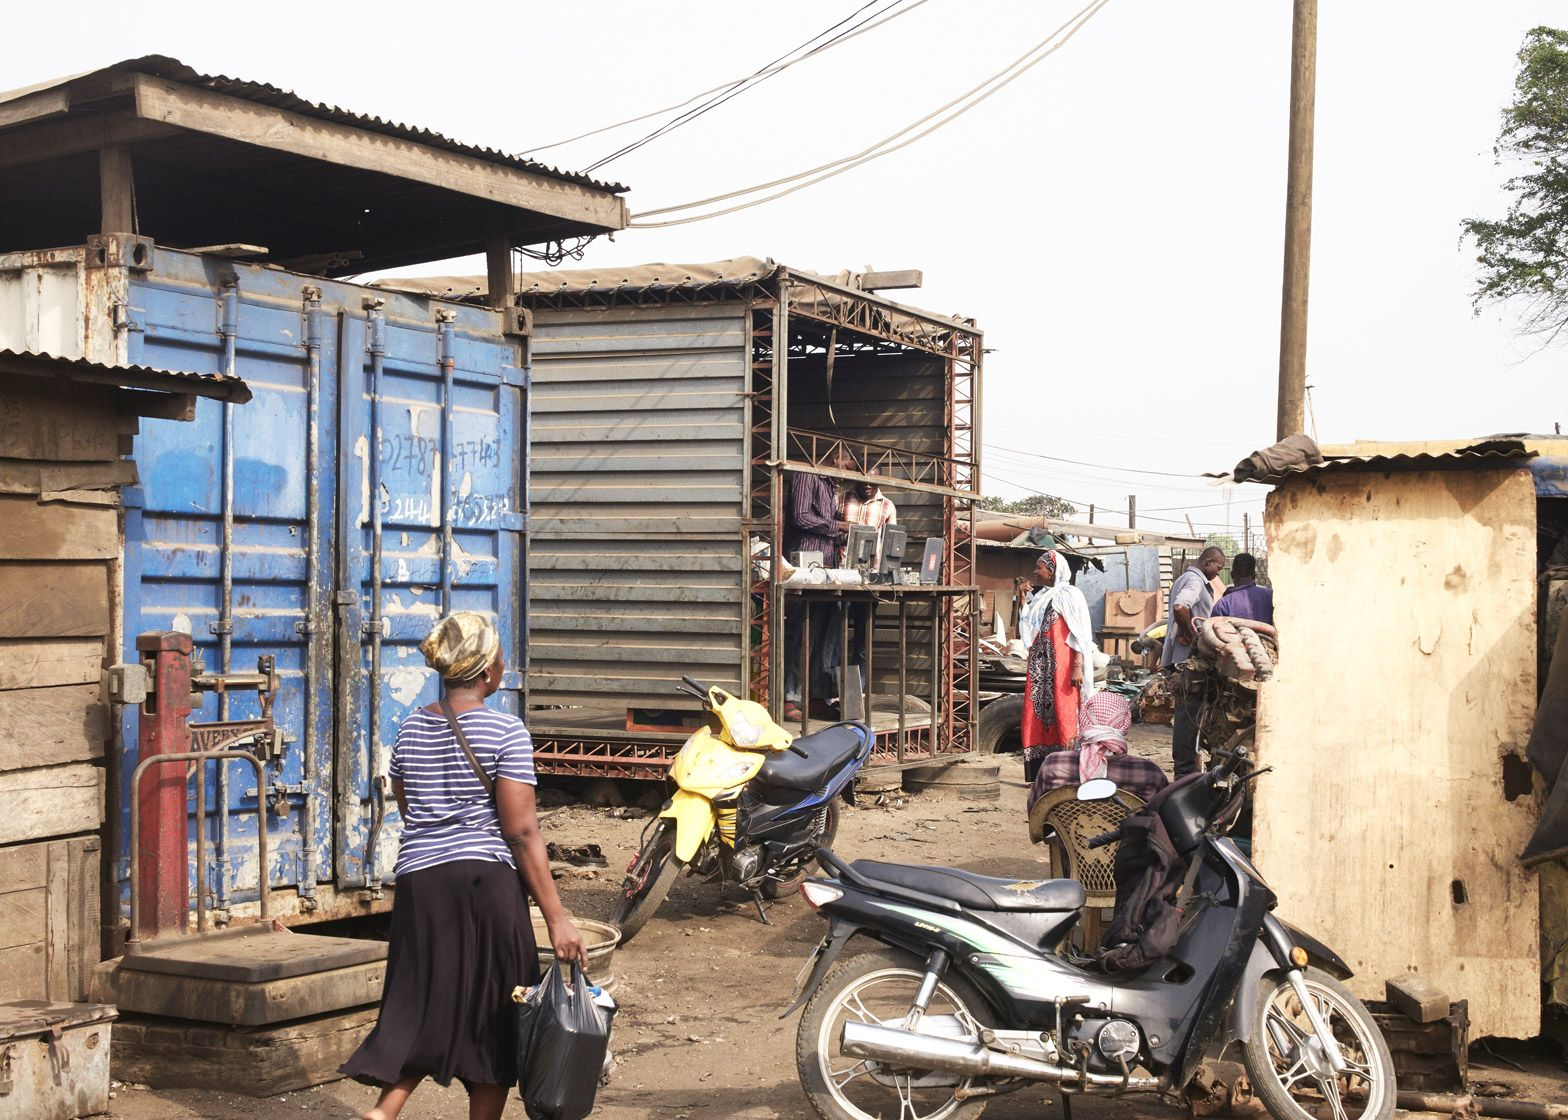 amp-spacecraft-makerspace-mobile-structures-agbogbloshie-ghana-worlds-largest-electrical-waste-dump-africa-potential-micro-industry-platforms-low-design-office_dezeen_1568_9.jpg